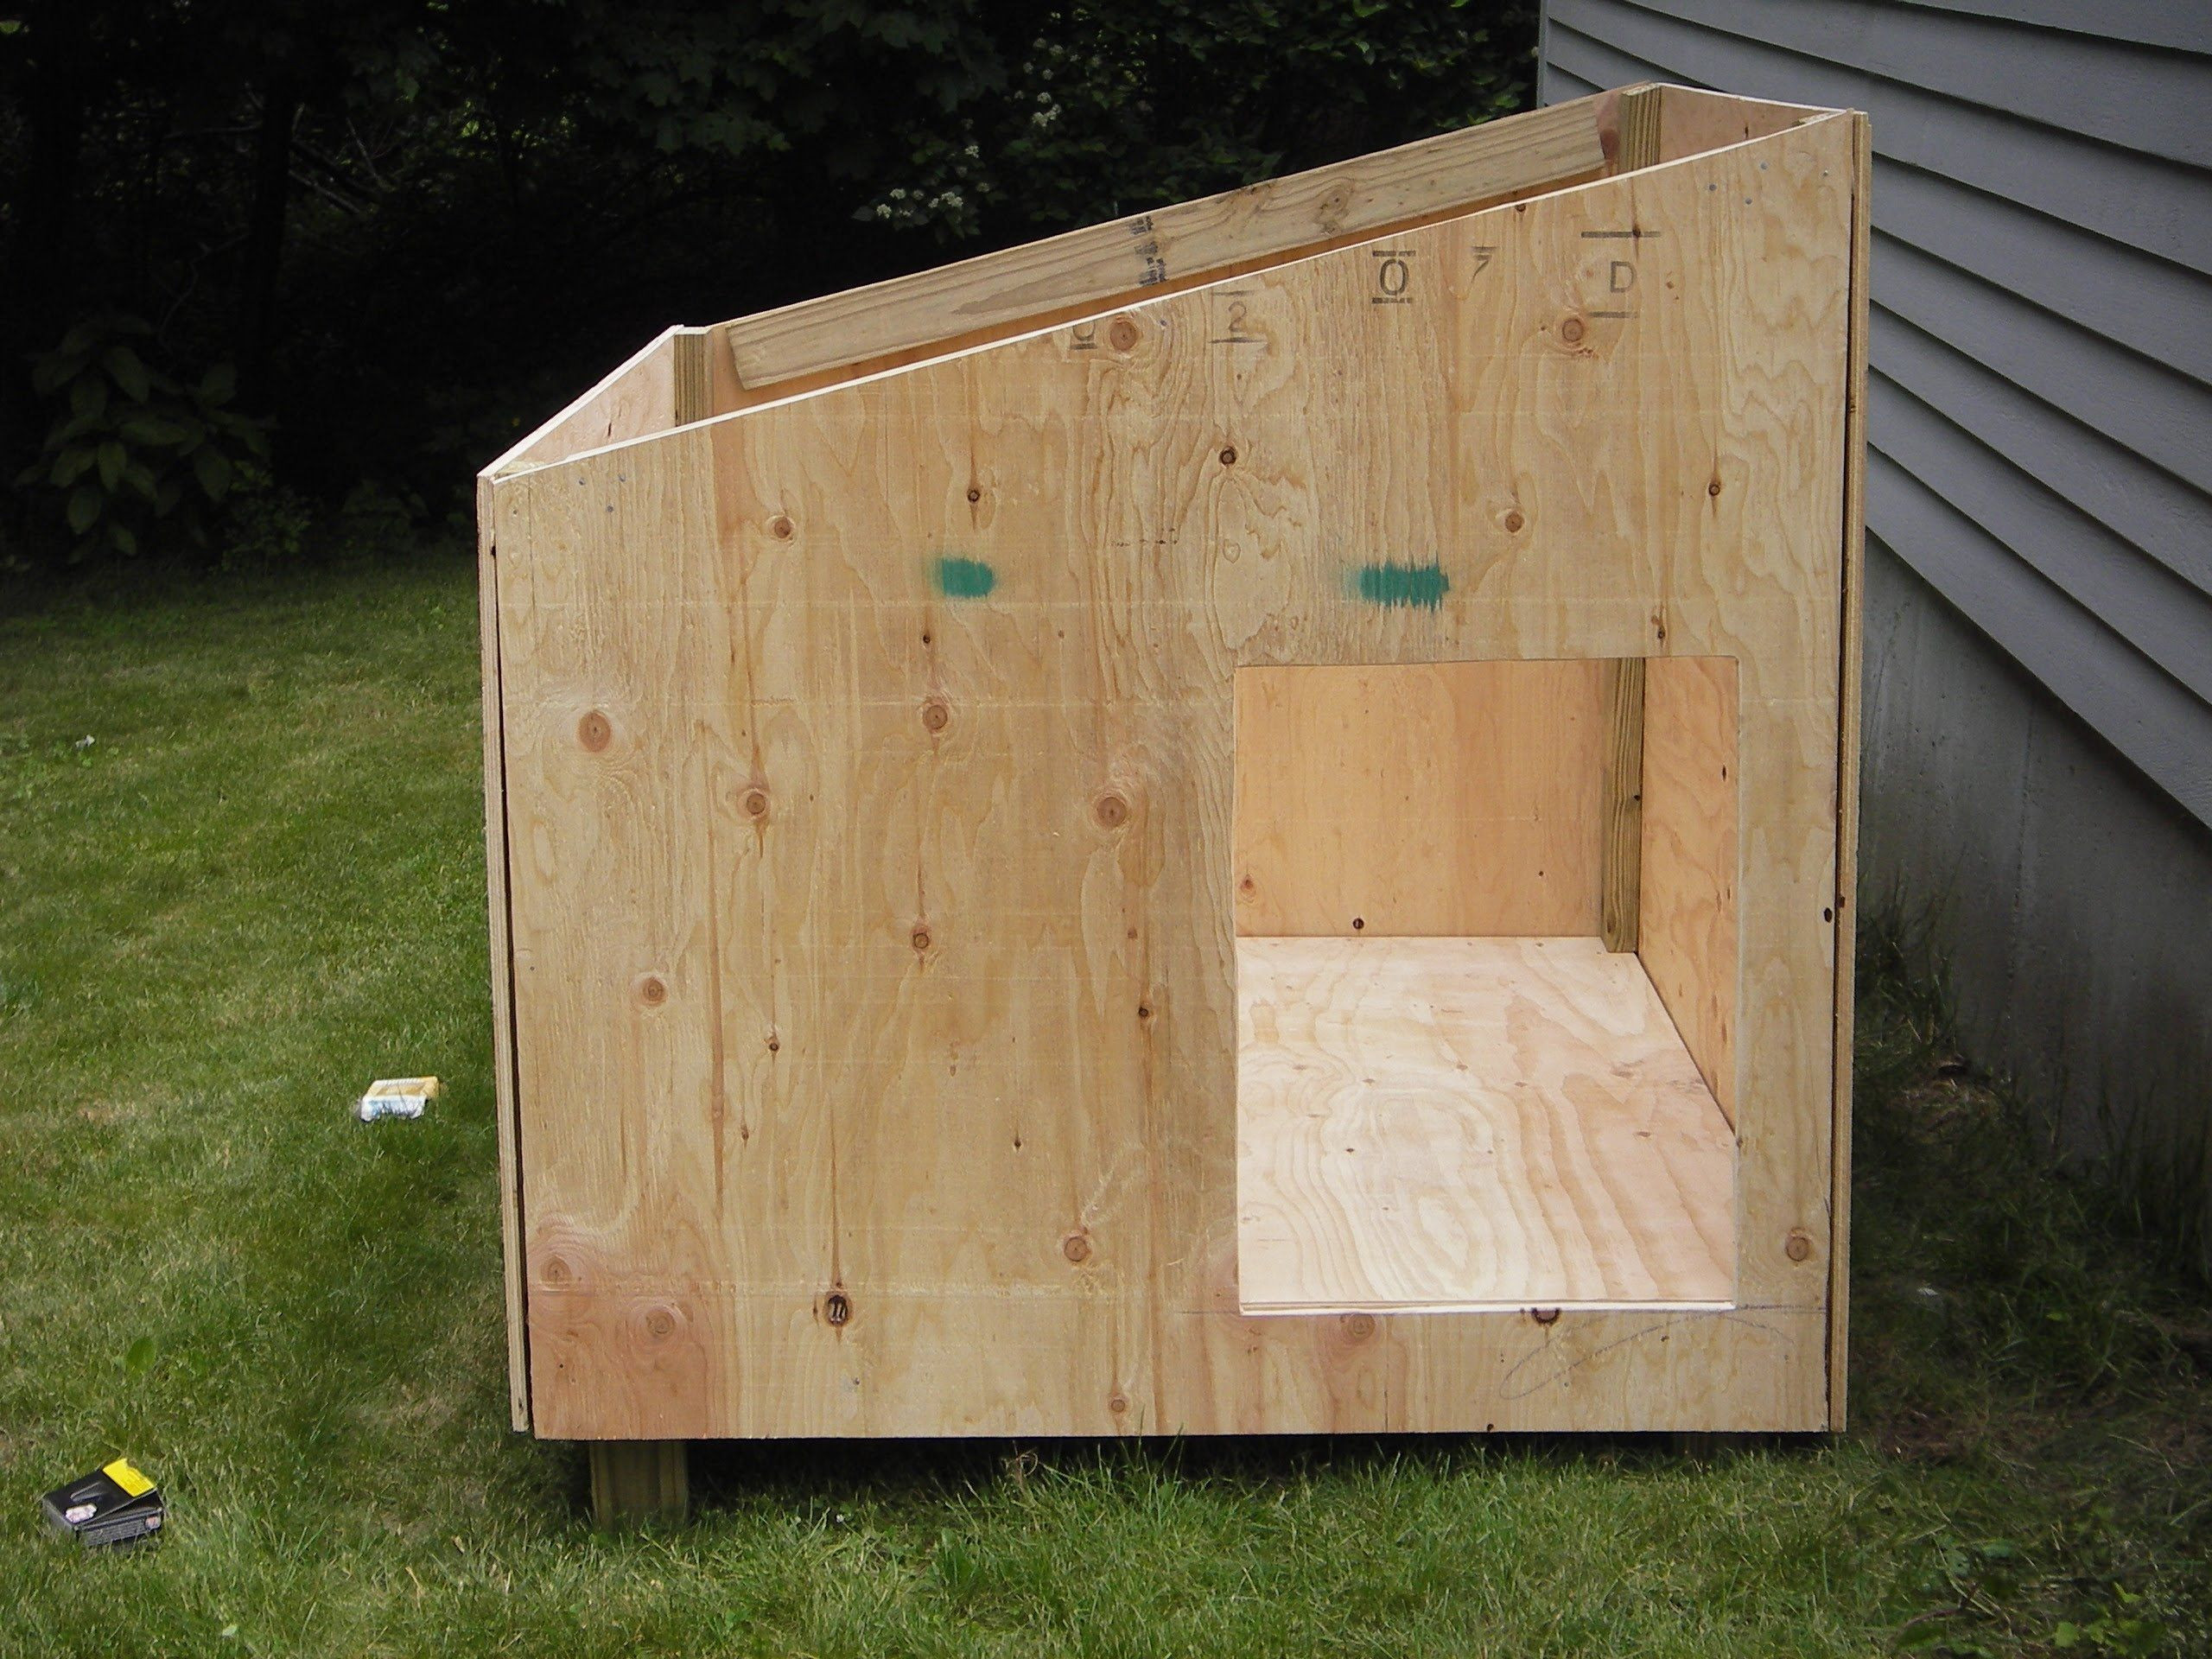 Best ideas about DIY Dog House Plans . Save or Pin Easy diy dog house plans Crafts Now.